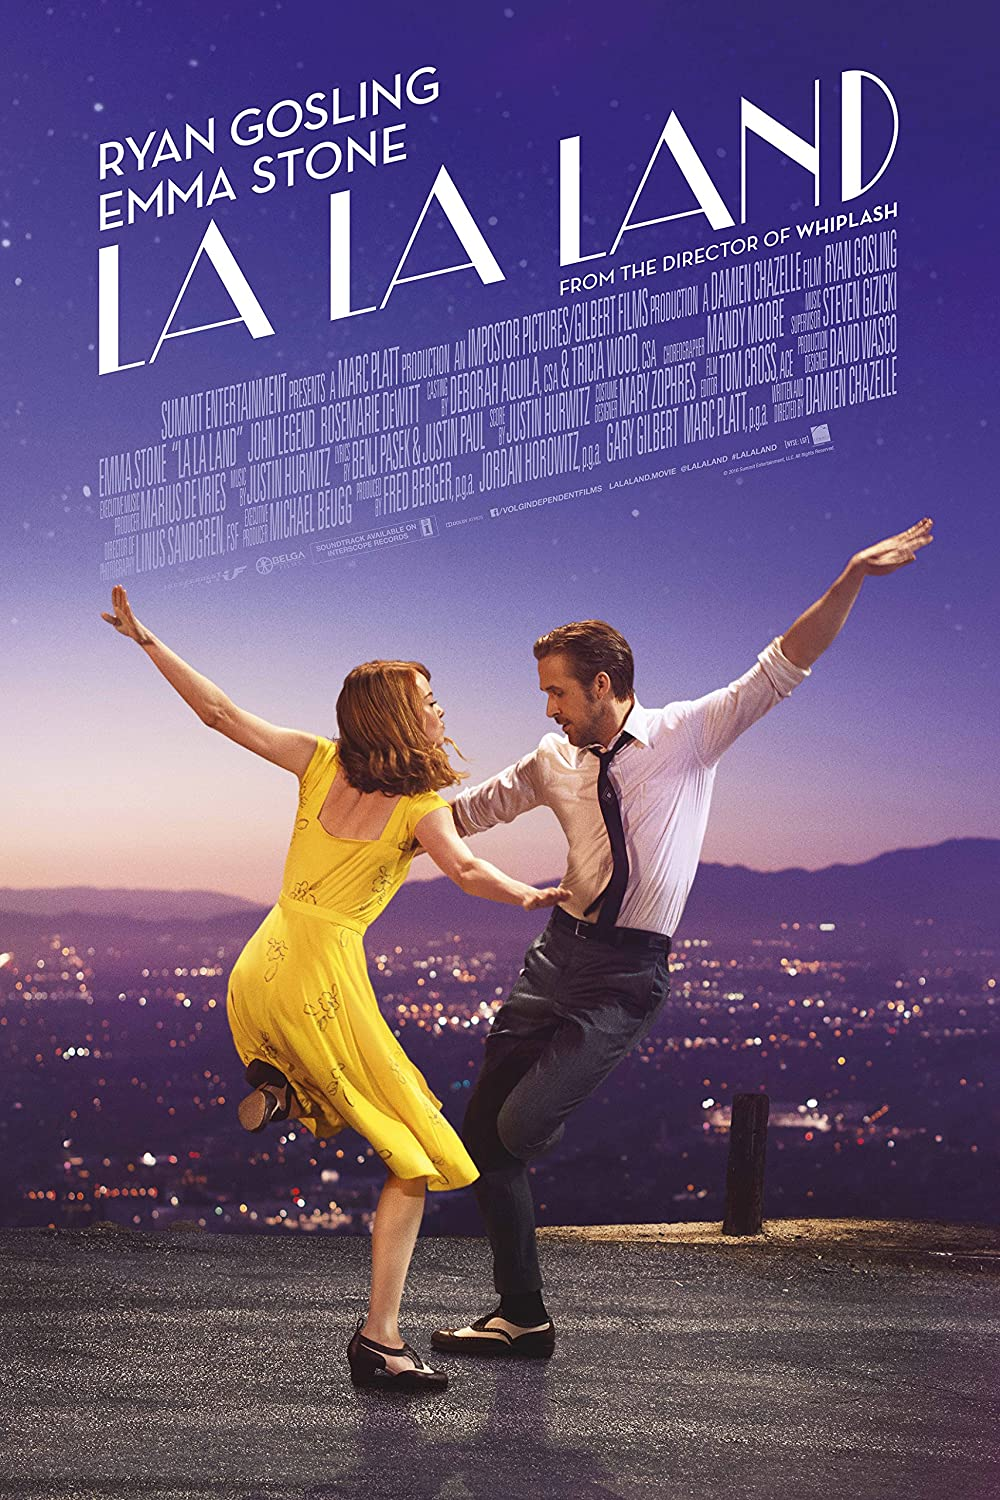 Amazon.com: La La Land Movie Poster 24 x 36 Inches : Ryan Gosling ...